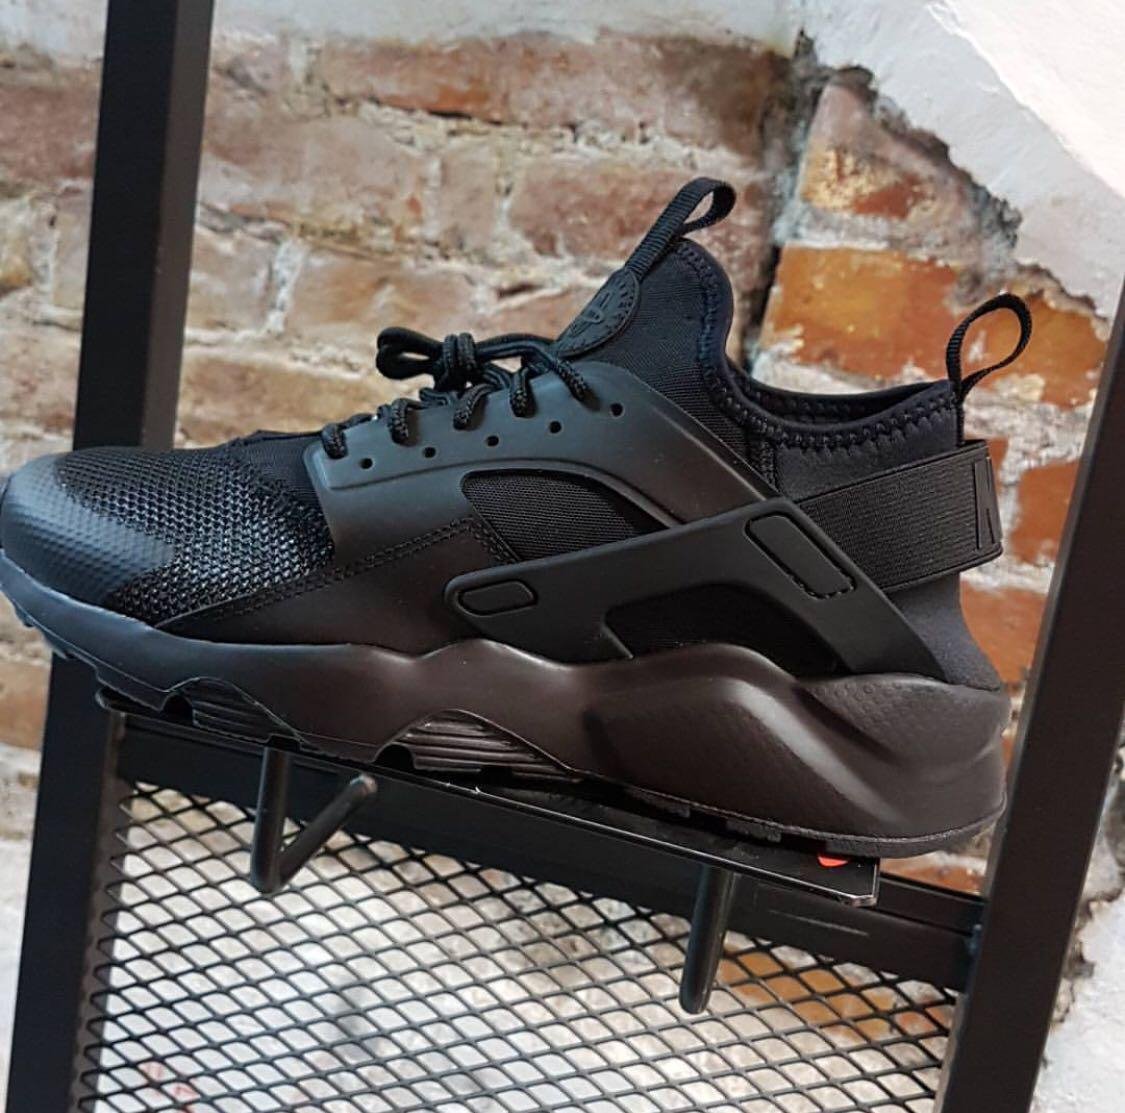 sports shoes e1b92 8ad30 Men's Nike Air Huarache Ultra|TRIPLE BLACK, Men's Fashion ...